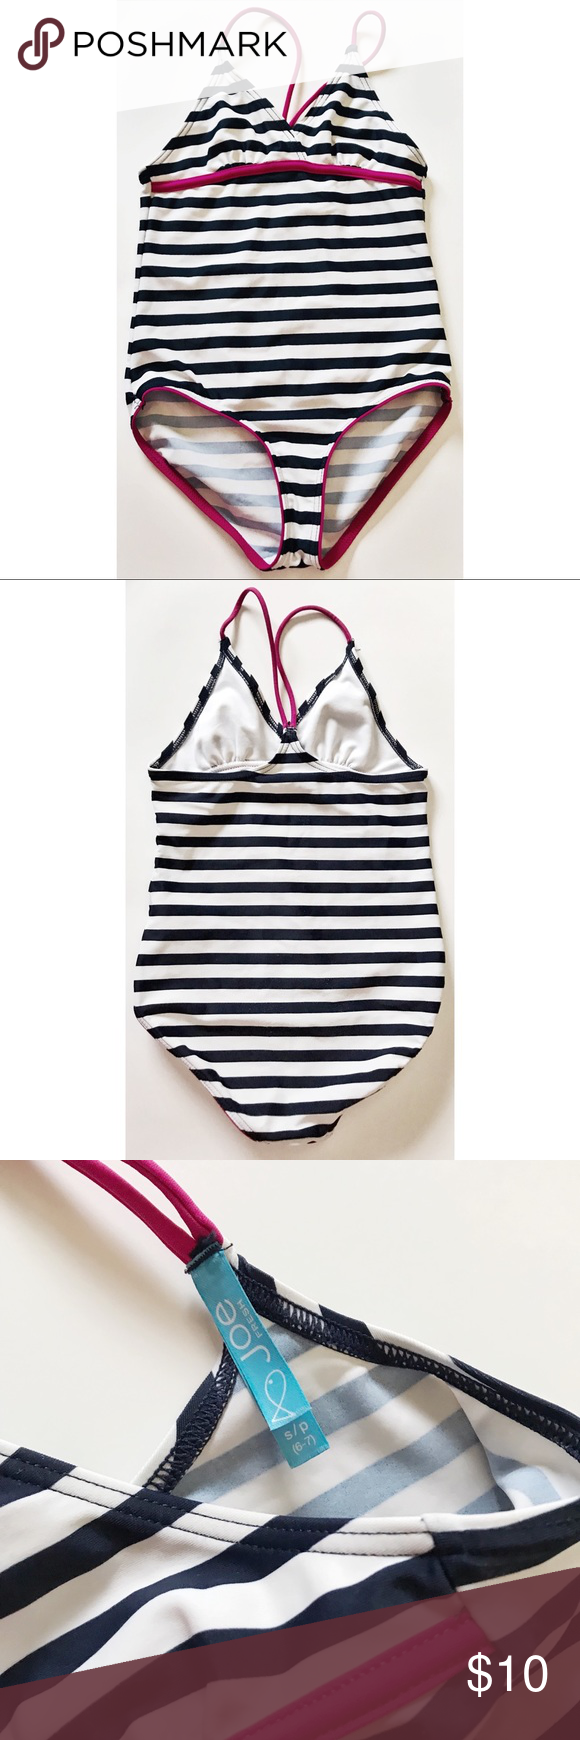 9ec4d4663f One-piece Swimsuit 👙 JOE Fresh one-piece swimsuit. - Excellent, gently